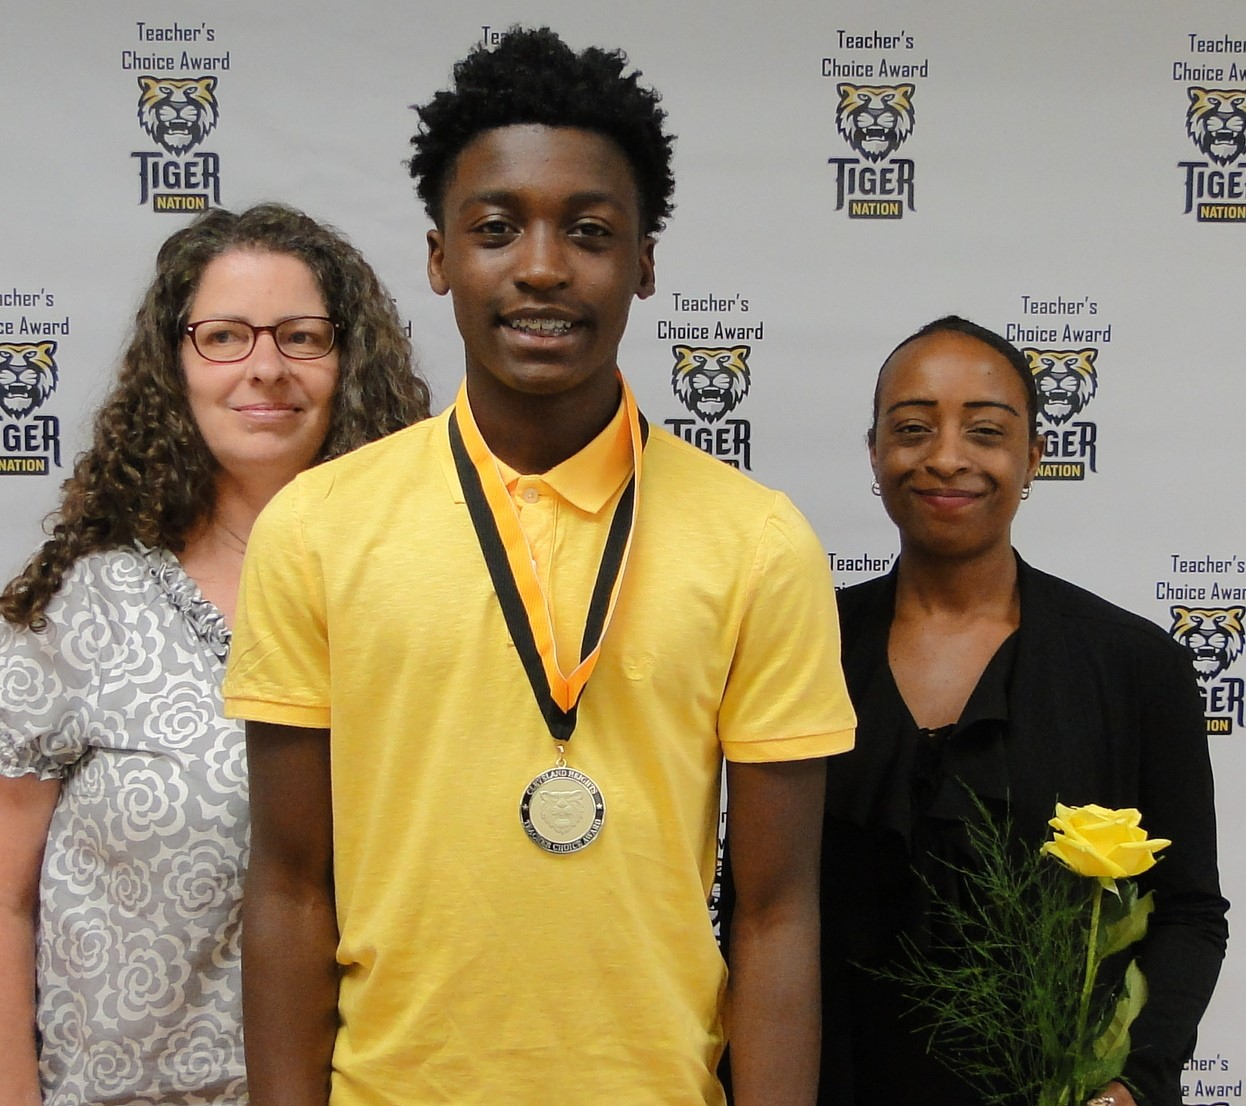 Christopher Sullen recognized by Ms. Ballou